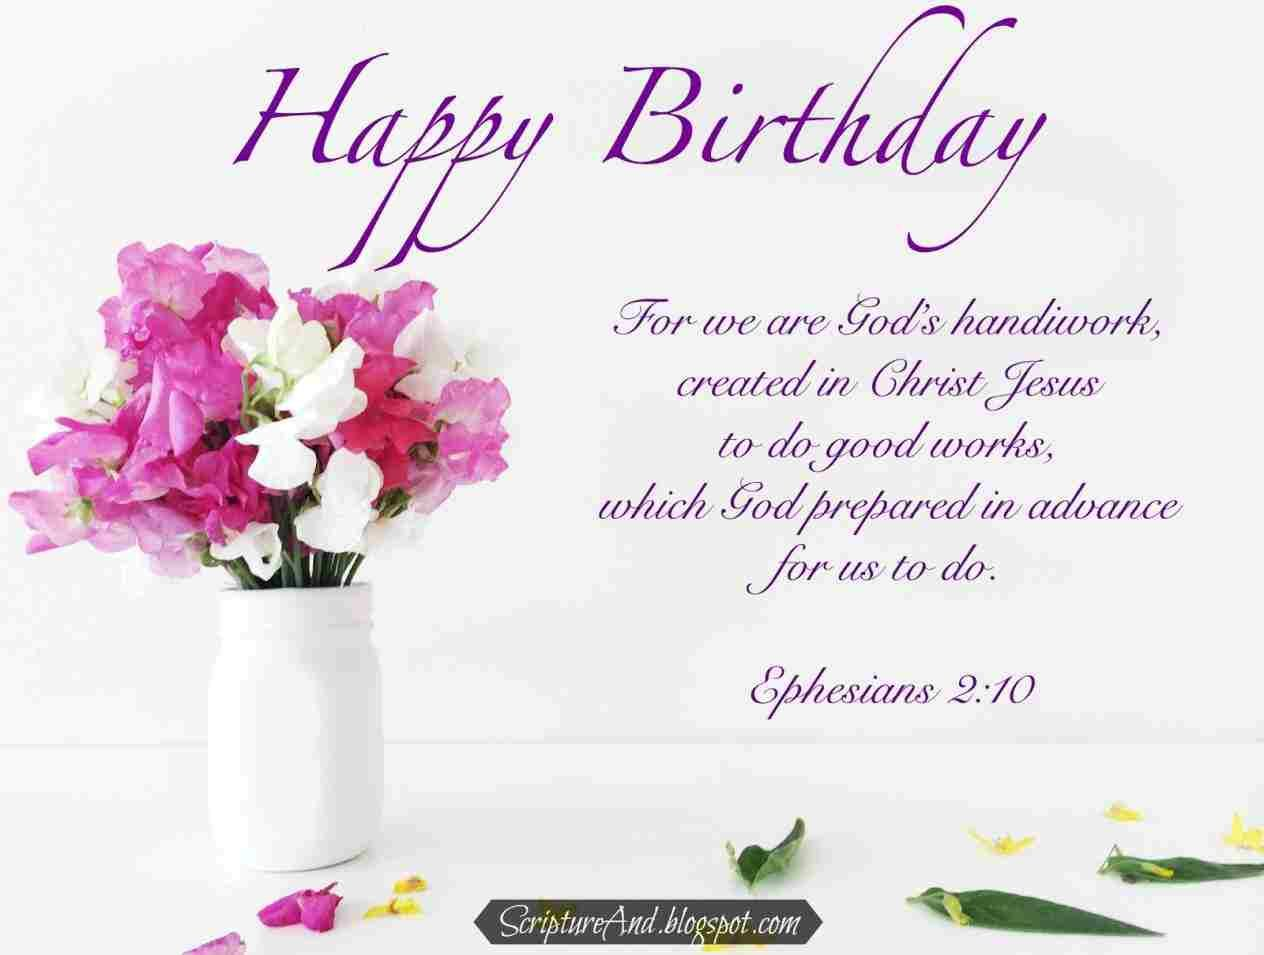 details this birthday card bible quotes 004 birthday wishes in malayalam malayalam sms malayalam font malayalam messages malayalam video youtube